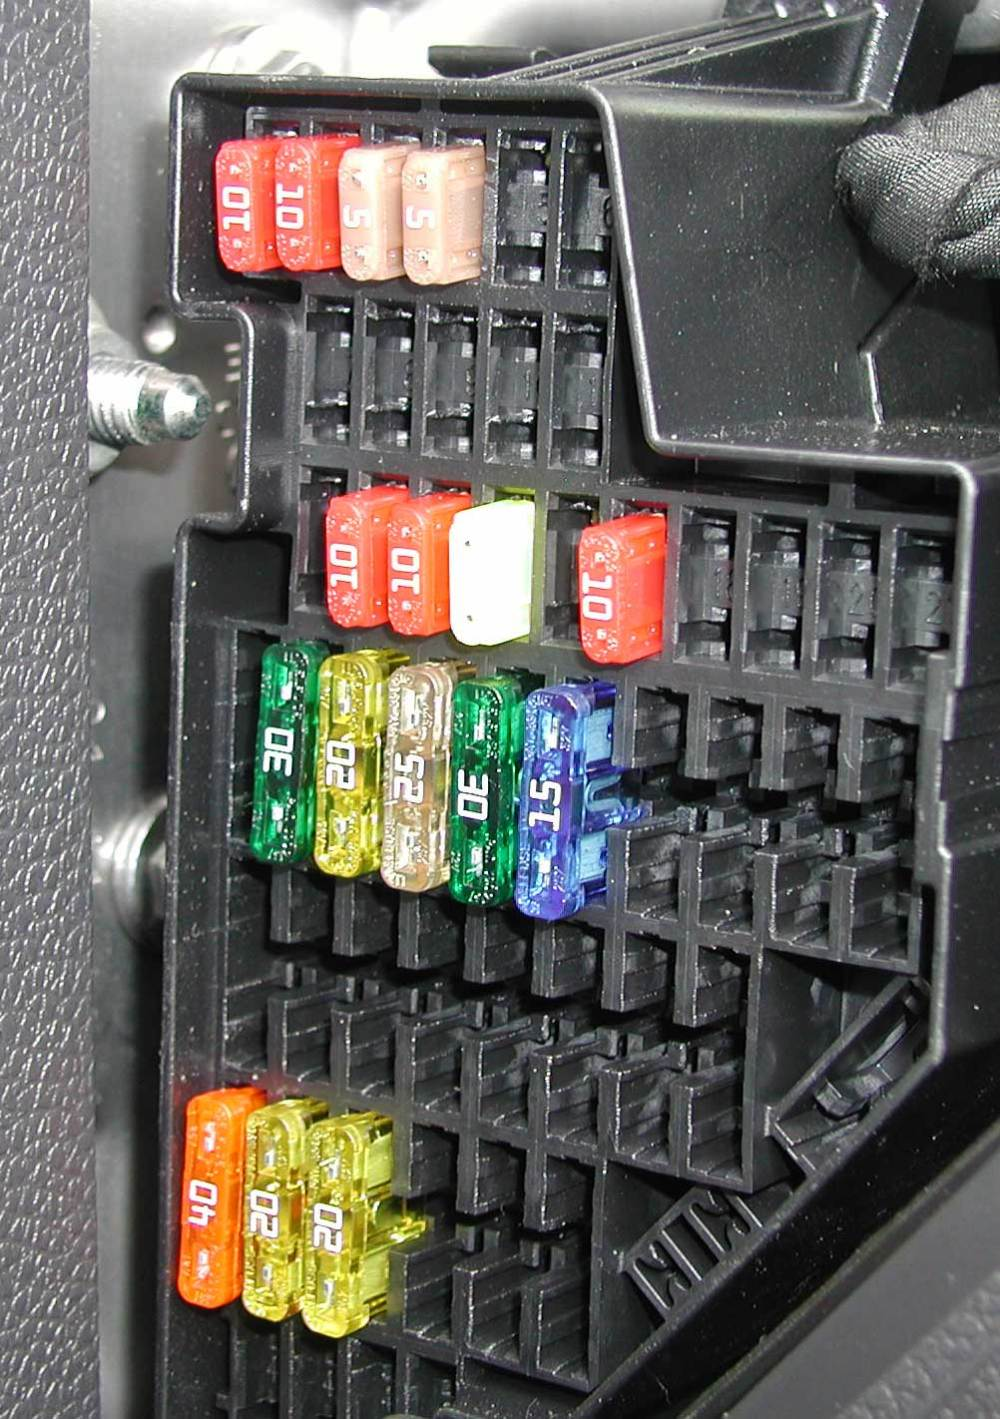 medium resolution of 2011 golf tdi fuse box picture please tdiclub forums 2002 dodge durango fuse diagram 2012 vw golf fuse box diagram